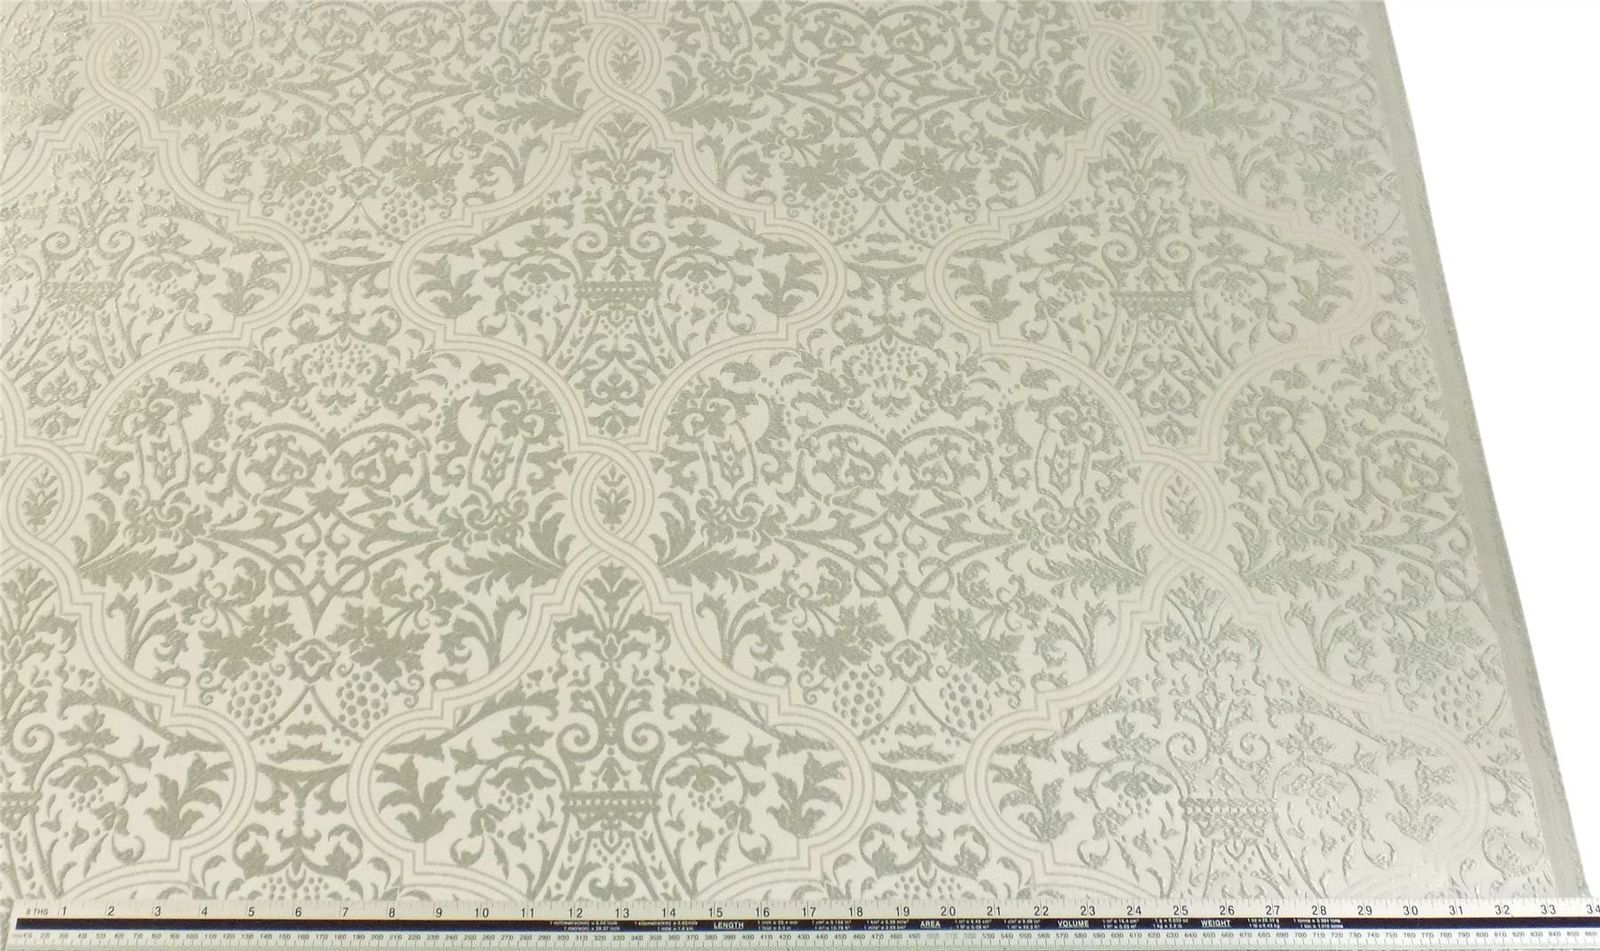 Slub Effect Silver Cream Embroidered Damask Fabric Material *2 Sizes*